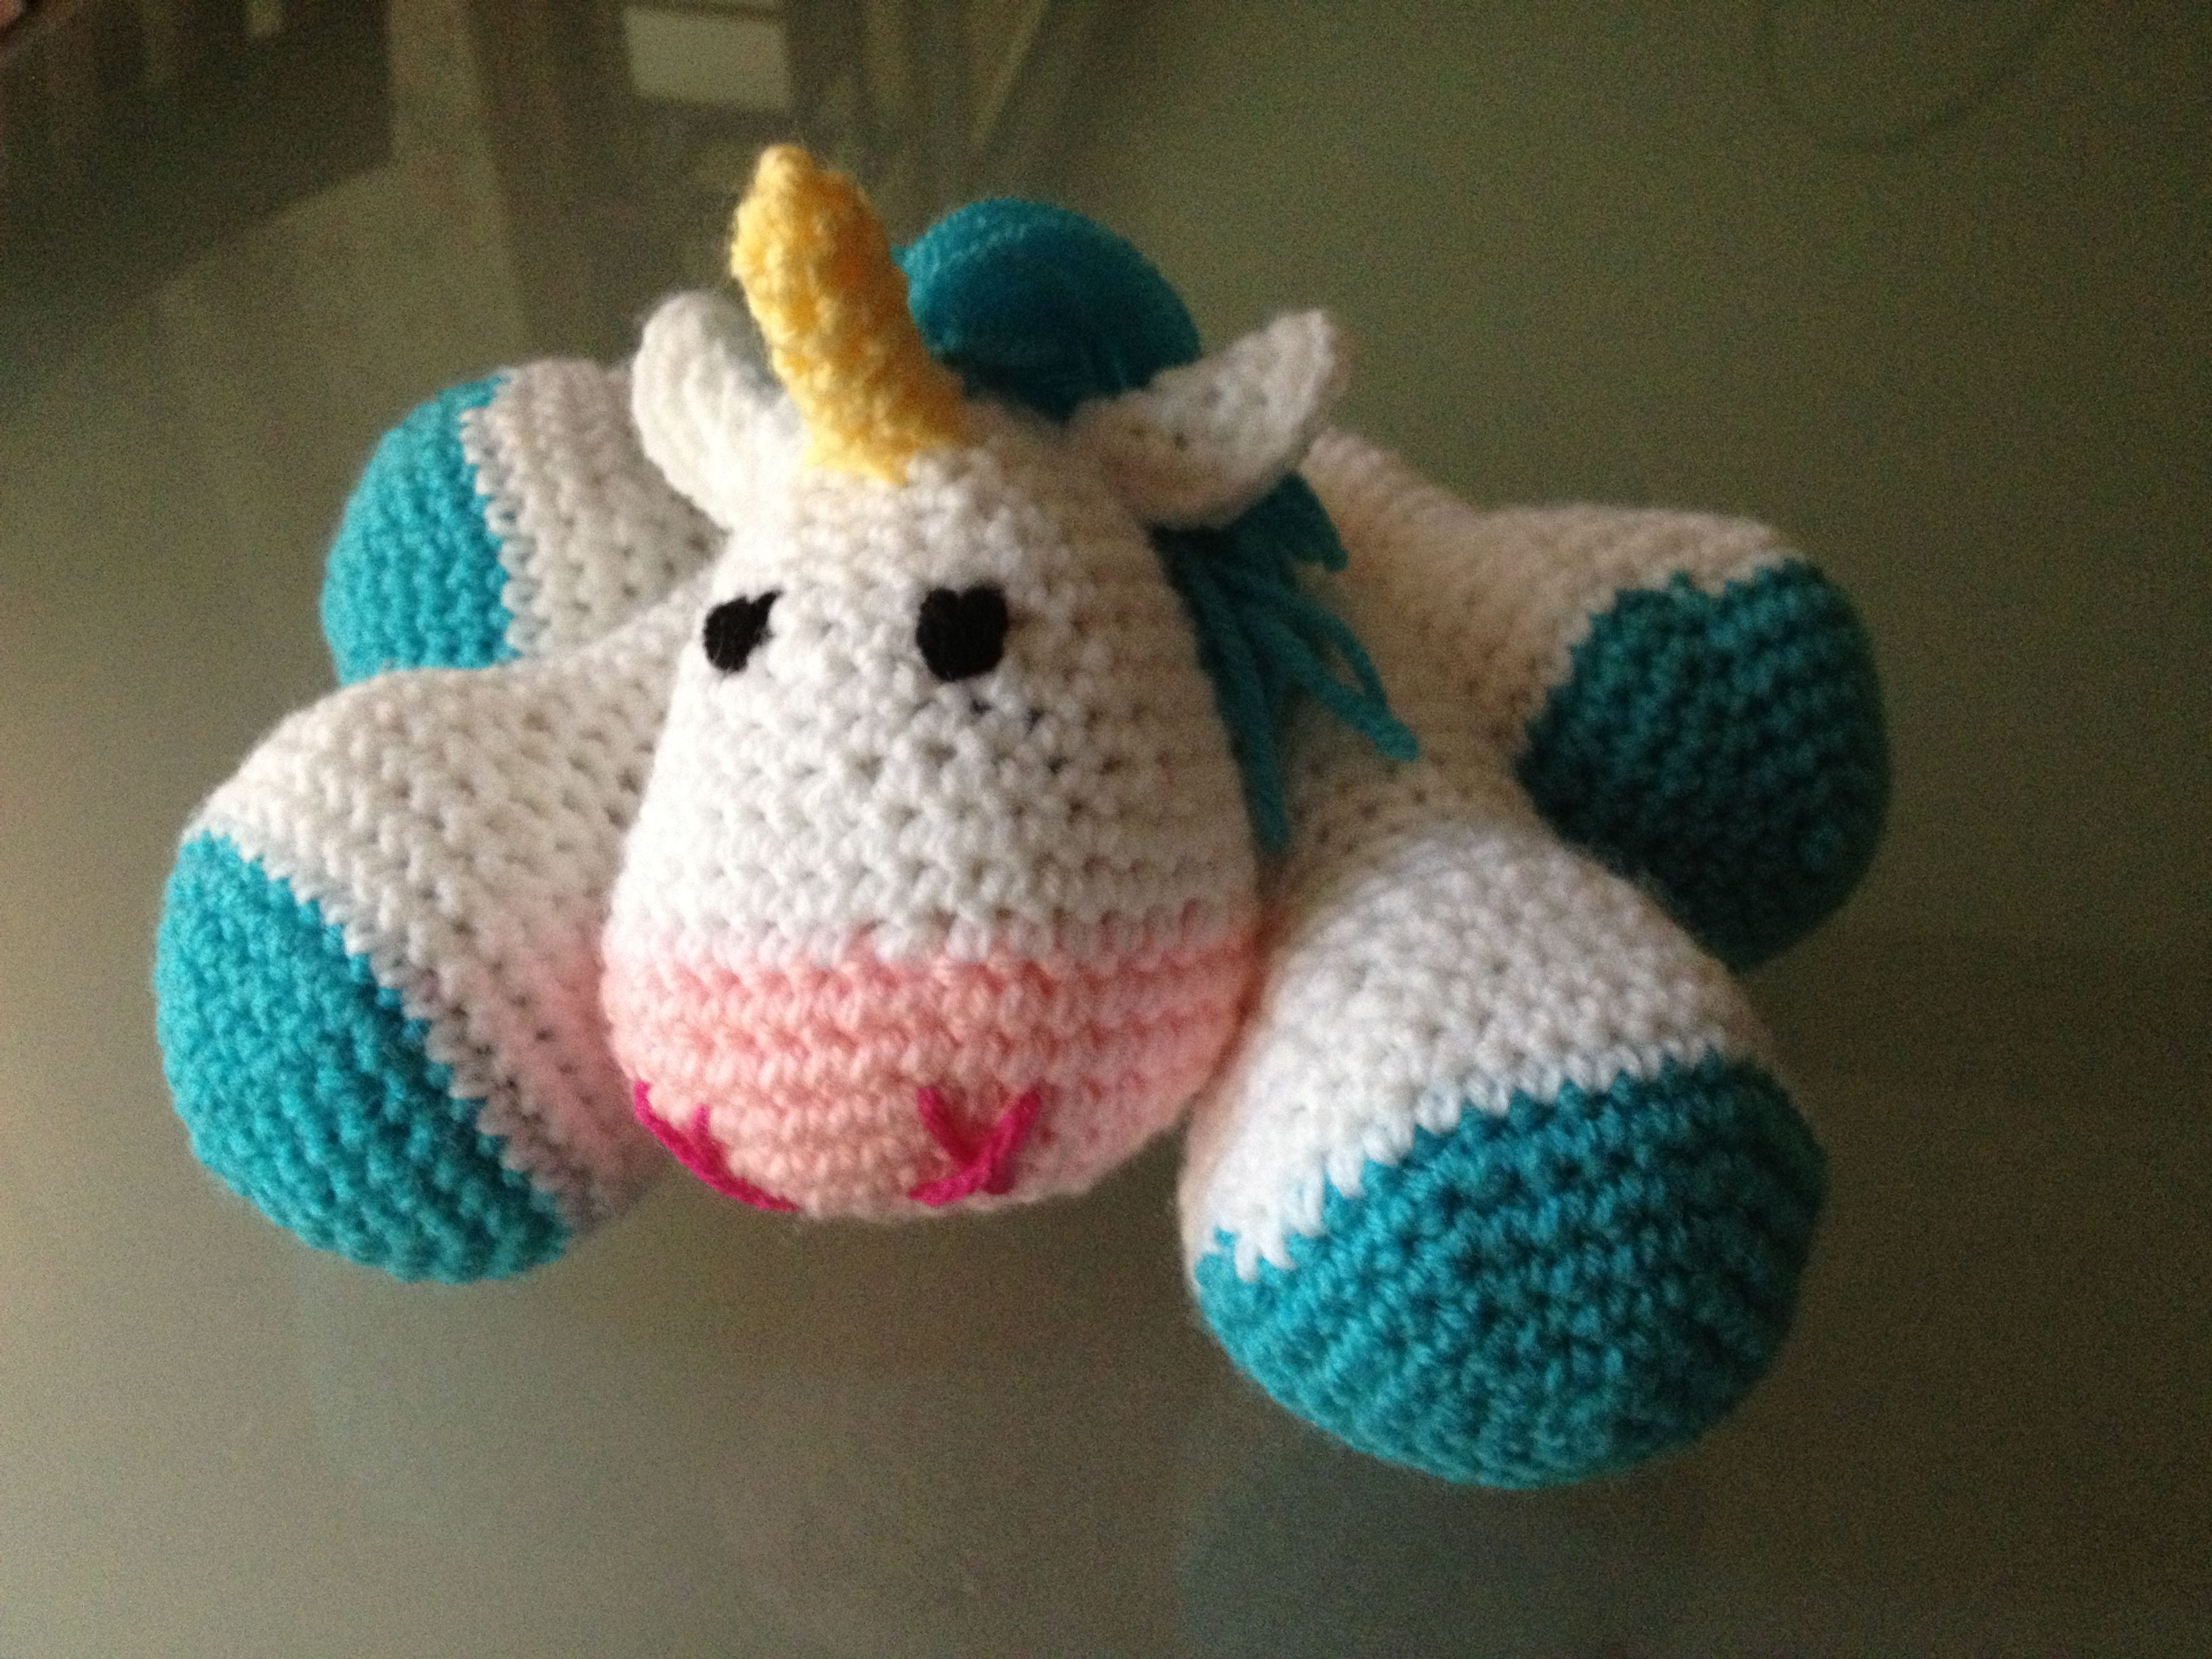 Crochet Unicorn : Crochet unicorn Yarn Crafts Pinterest